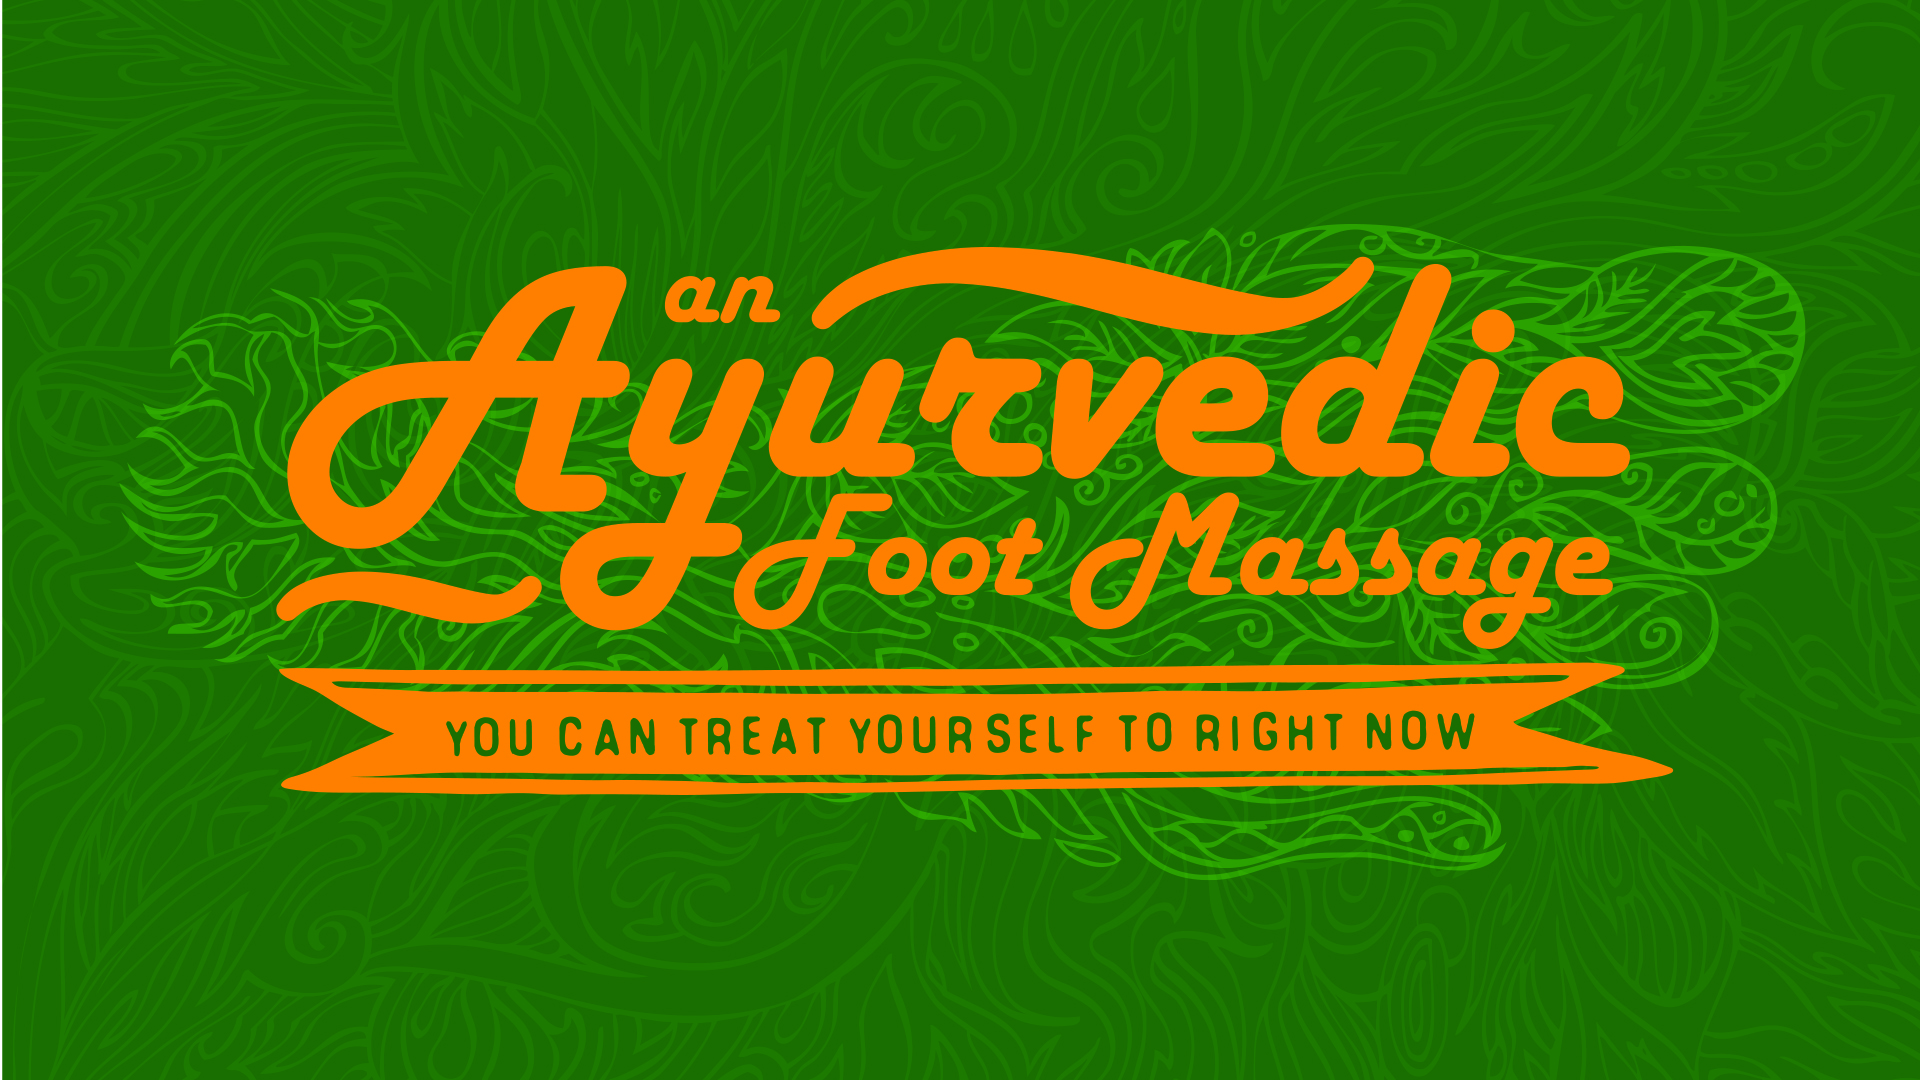 An Ayurvedic Foot Massage You Can Treat Yourself to Right Now